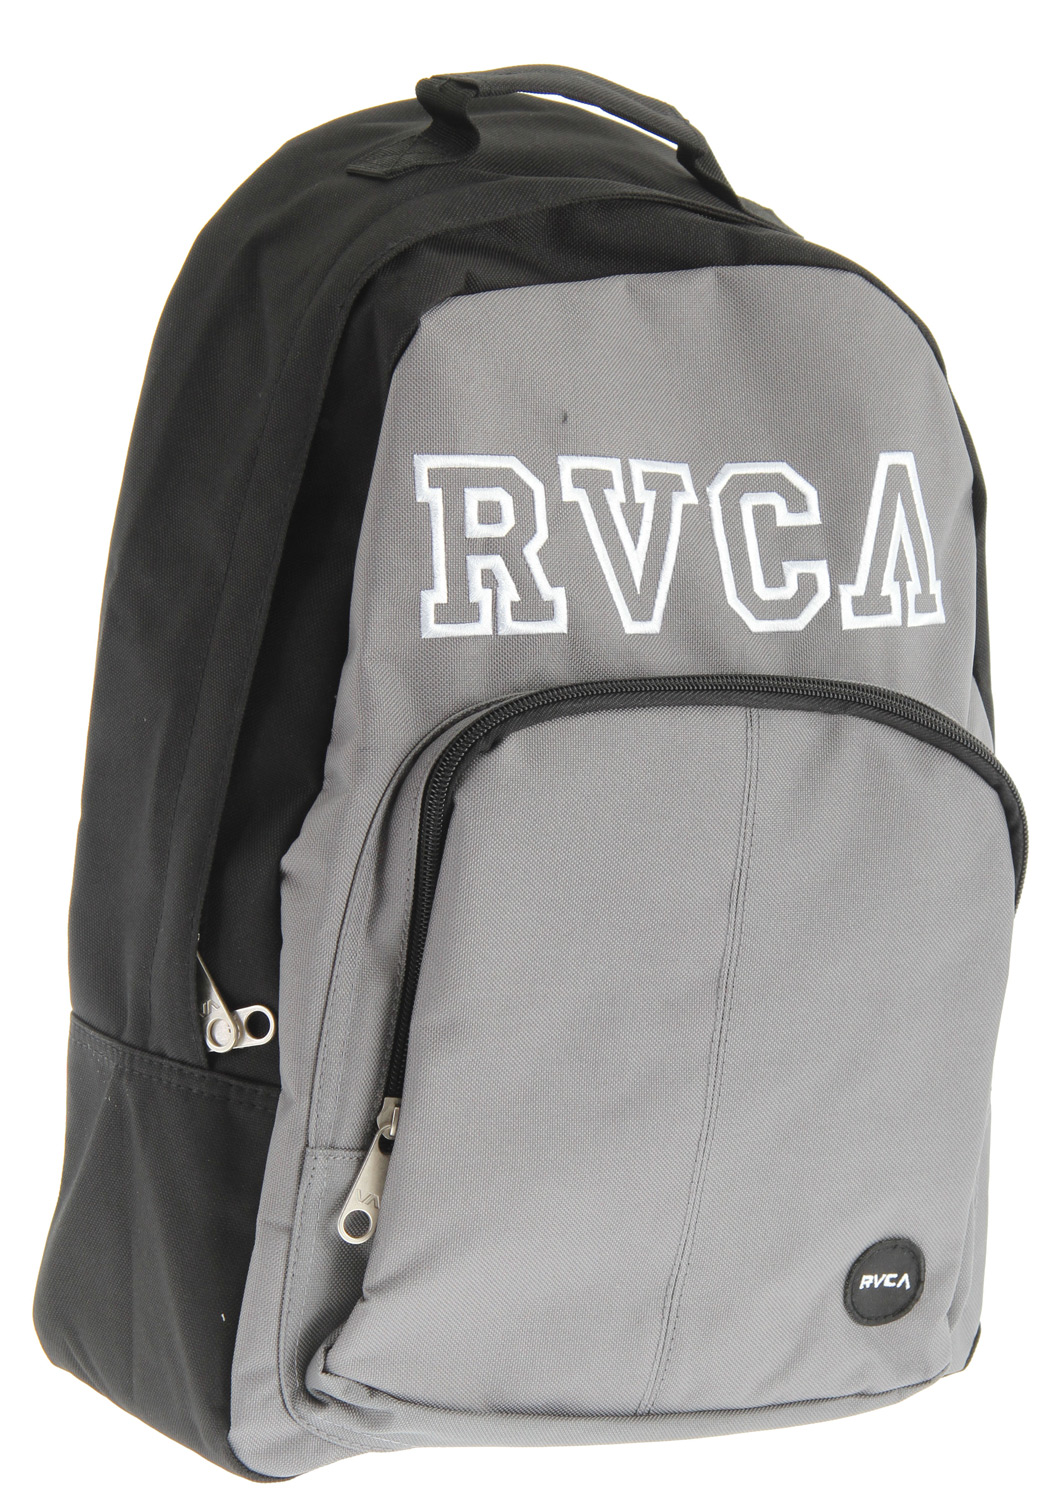 "Key Features of the RVCA College Drop Out Pak Backpack: Dimensions: 17"" x 13"" x 5.5"" 100% polyester backpack 2 zippered enclosed compartments RVCA embroidery at front with RVCA woven patch at front pouch Padded shoulder straps - $26.95"